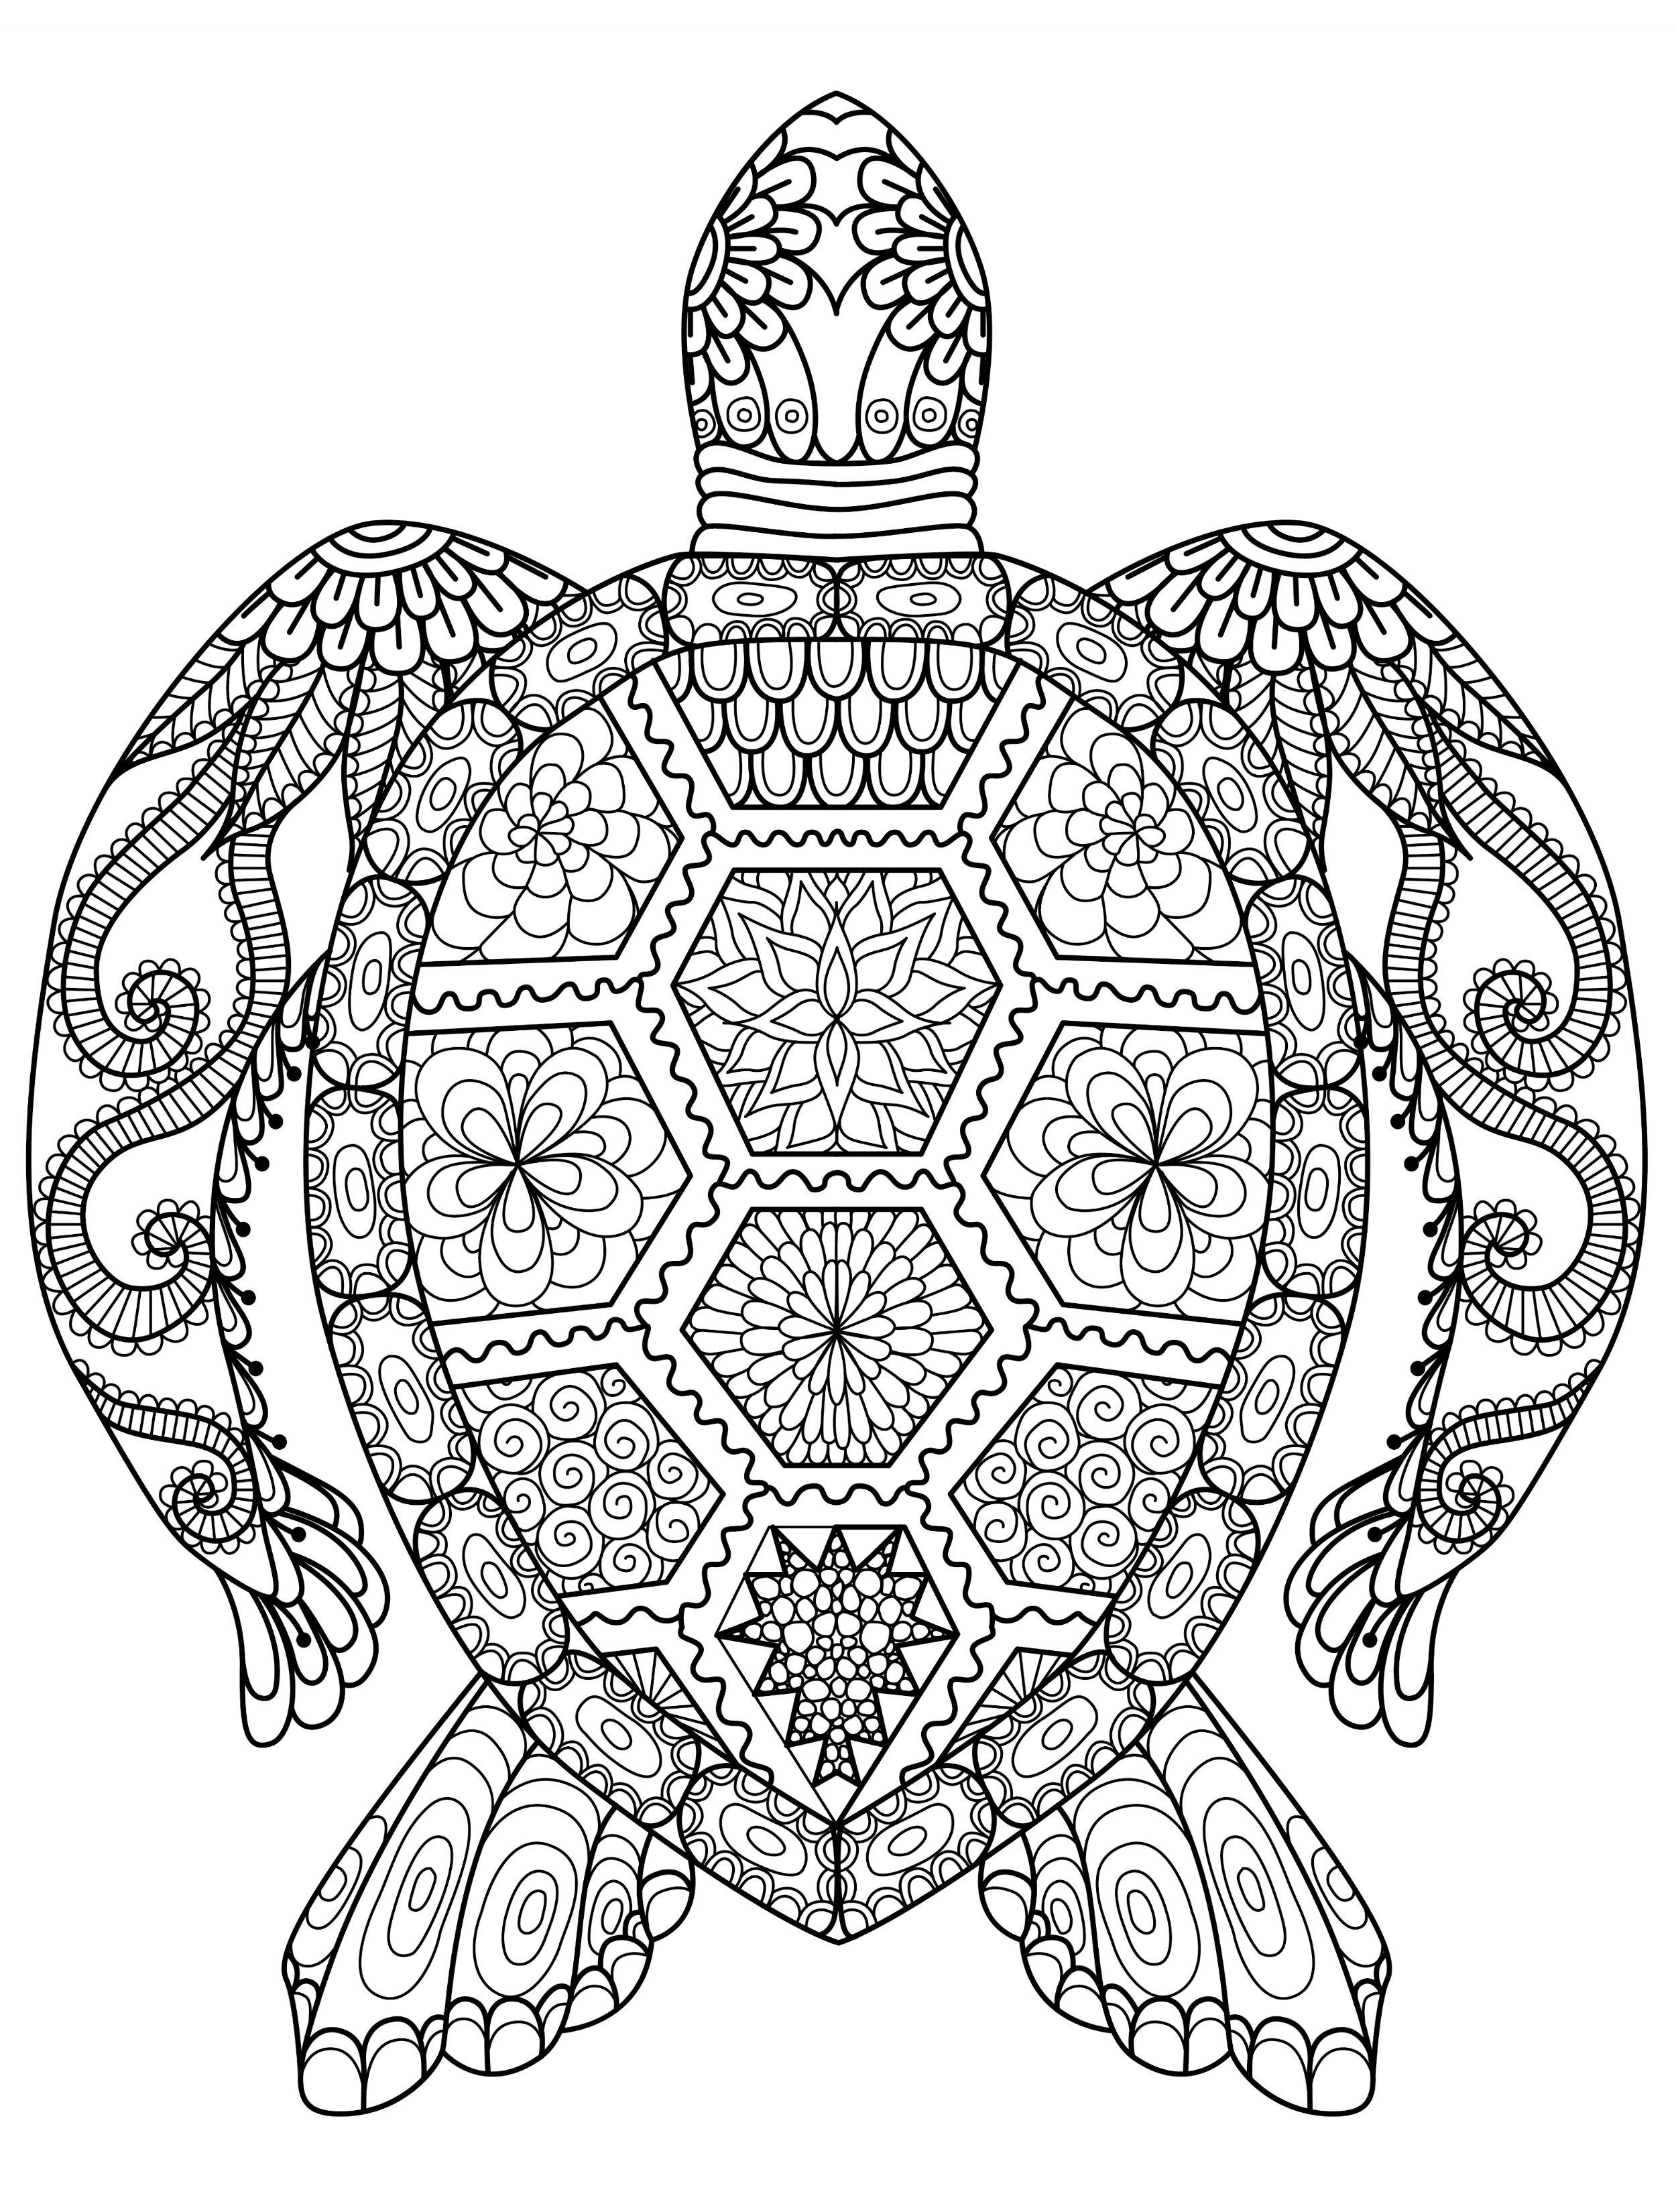 Top 20 Gorgeous Free Printable Adult Coloring Pages … | Adult Coloring #DQ47